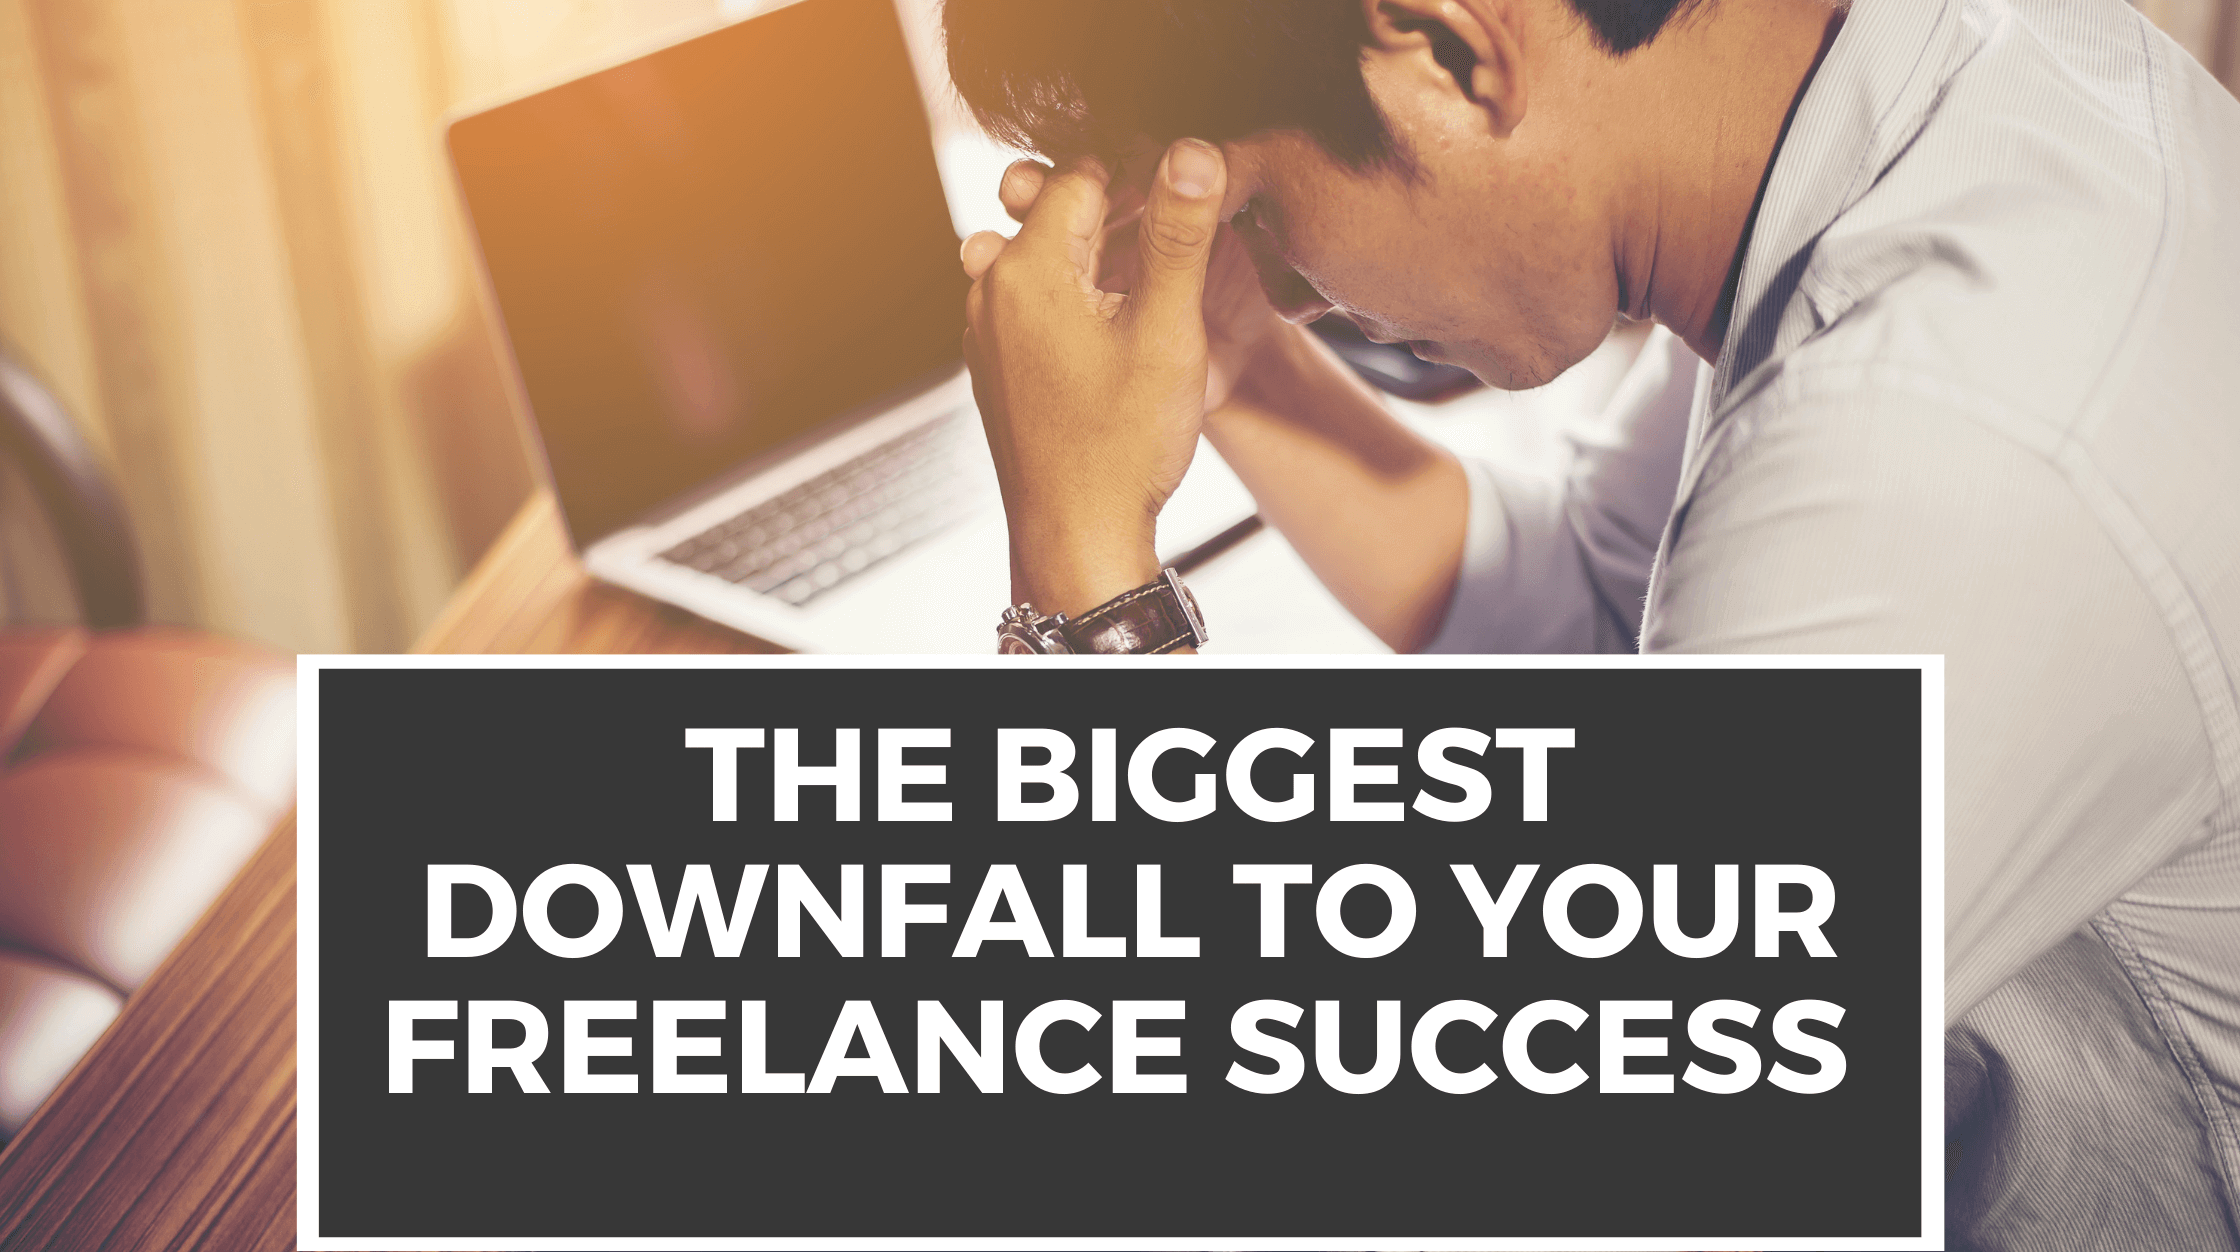 The Biggest Downfall To Your Freelance Success